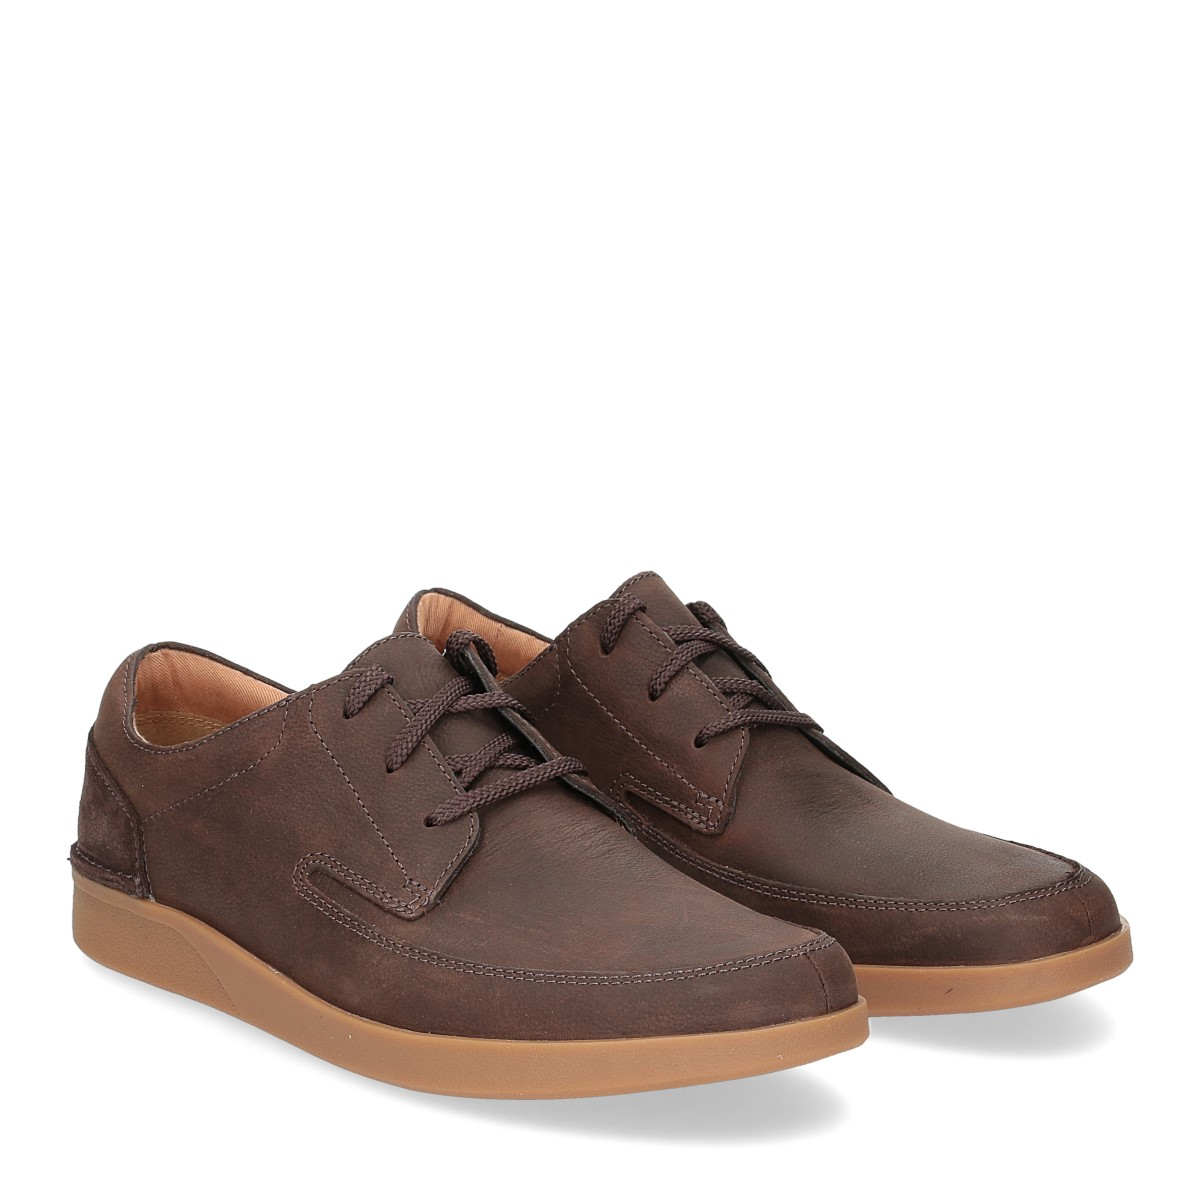 Clarks Oackland Craft dark brown nubuck